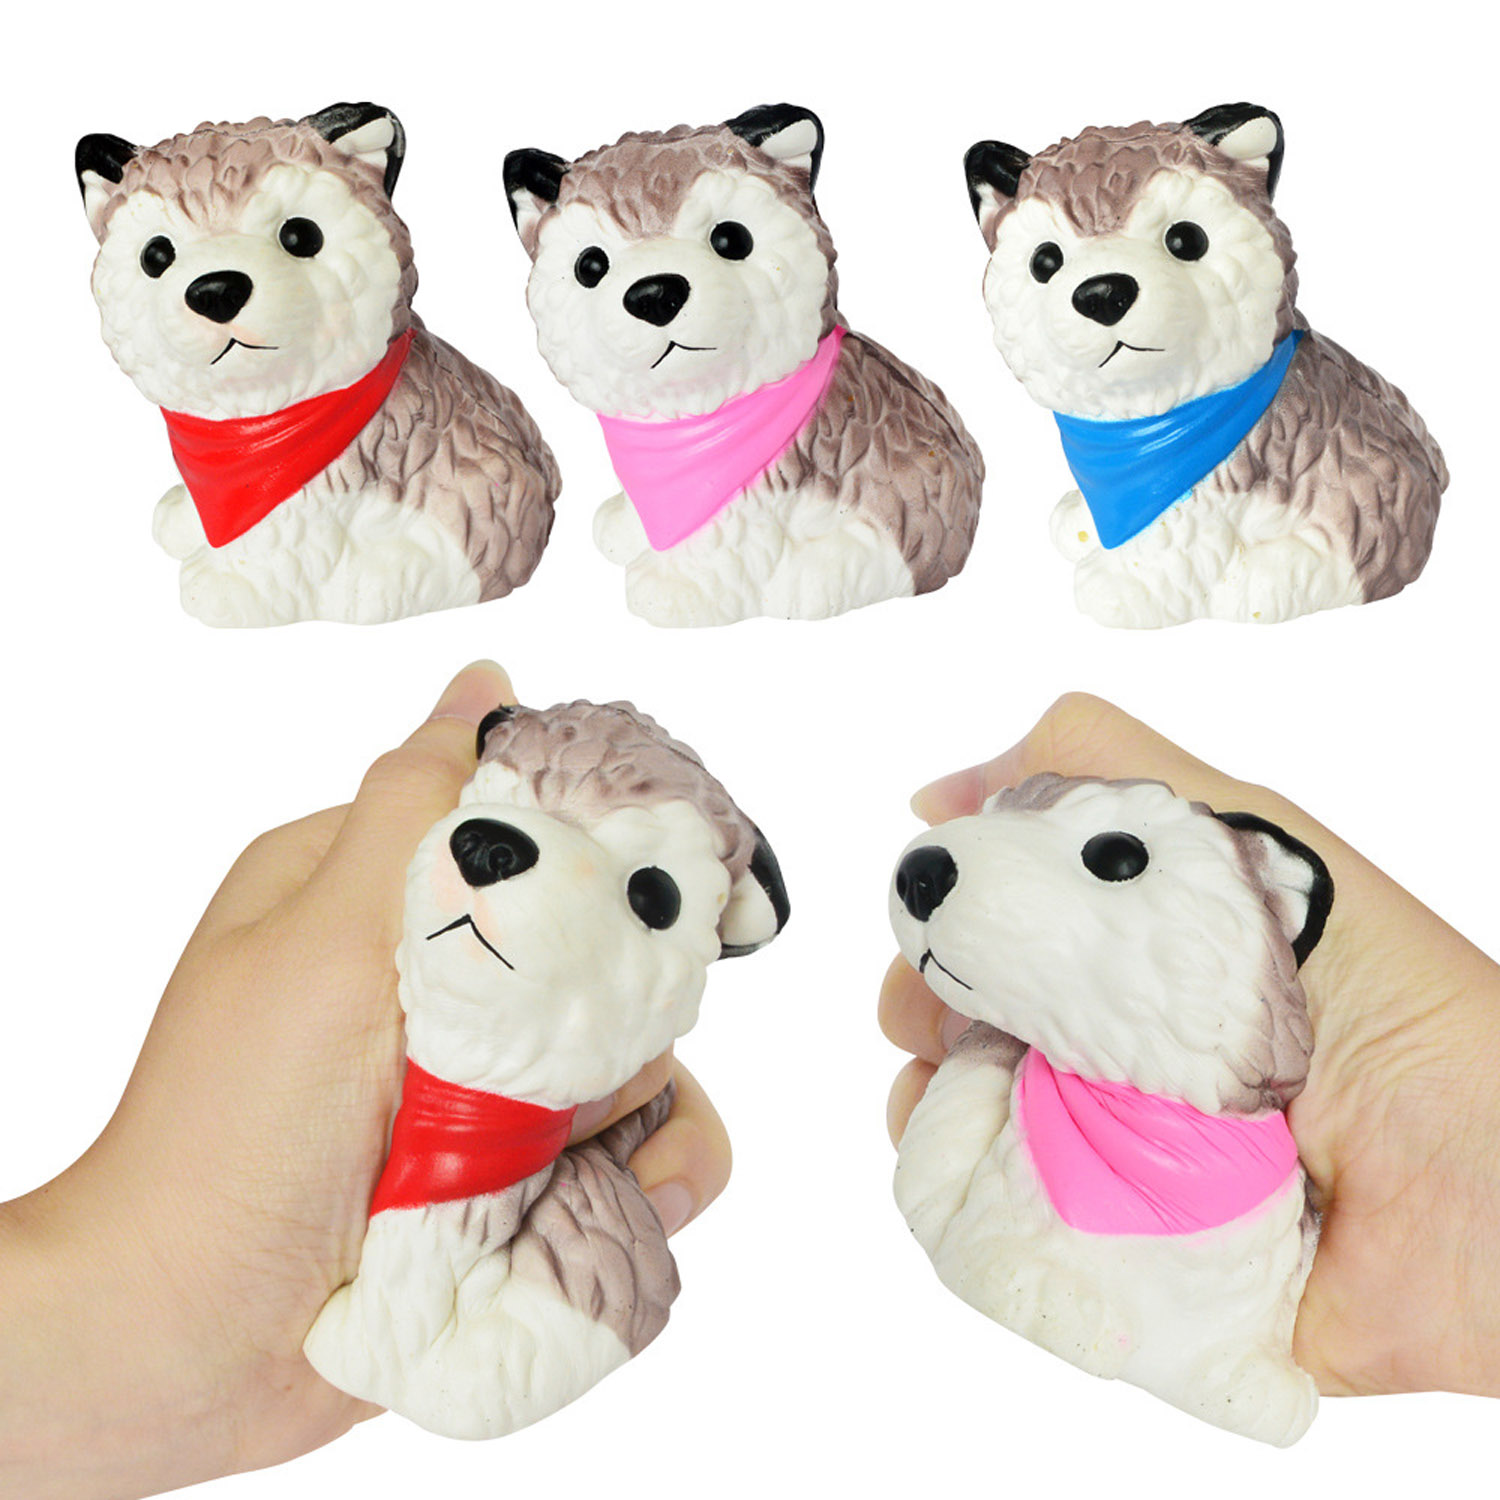 Besegad Slow Rising Squishy Puppy Dog Squeeze Husky Dog Jumbo Scented Decompression Cartoon Animals Relieves Stress Anxiety Toy